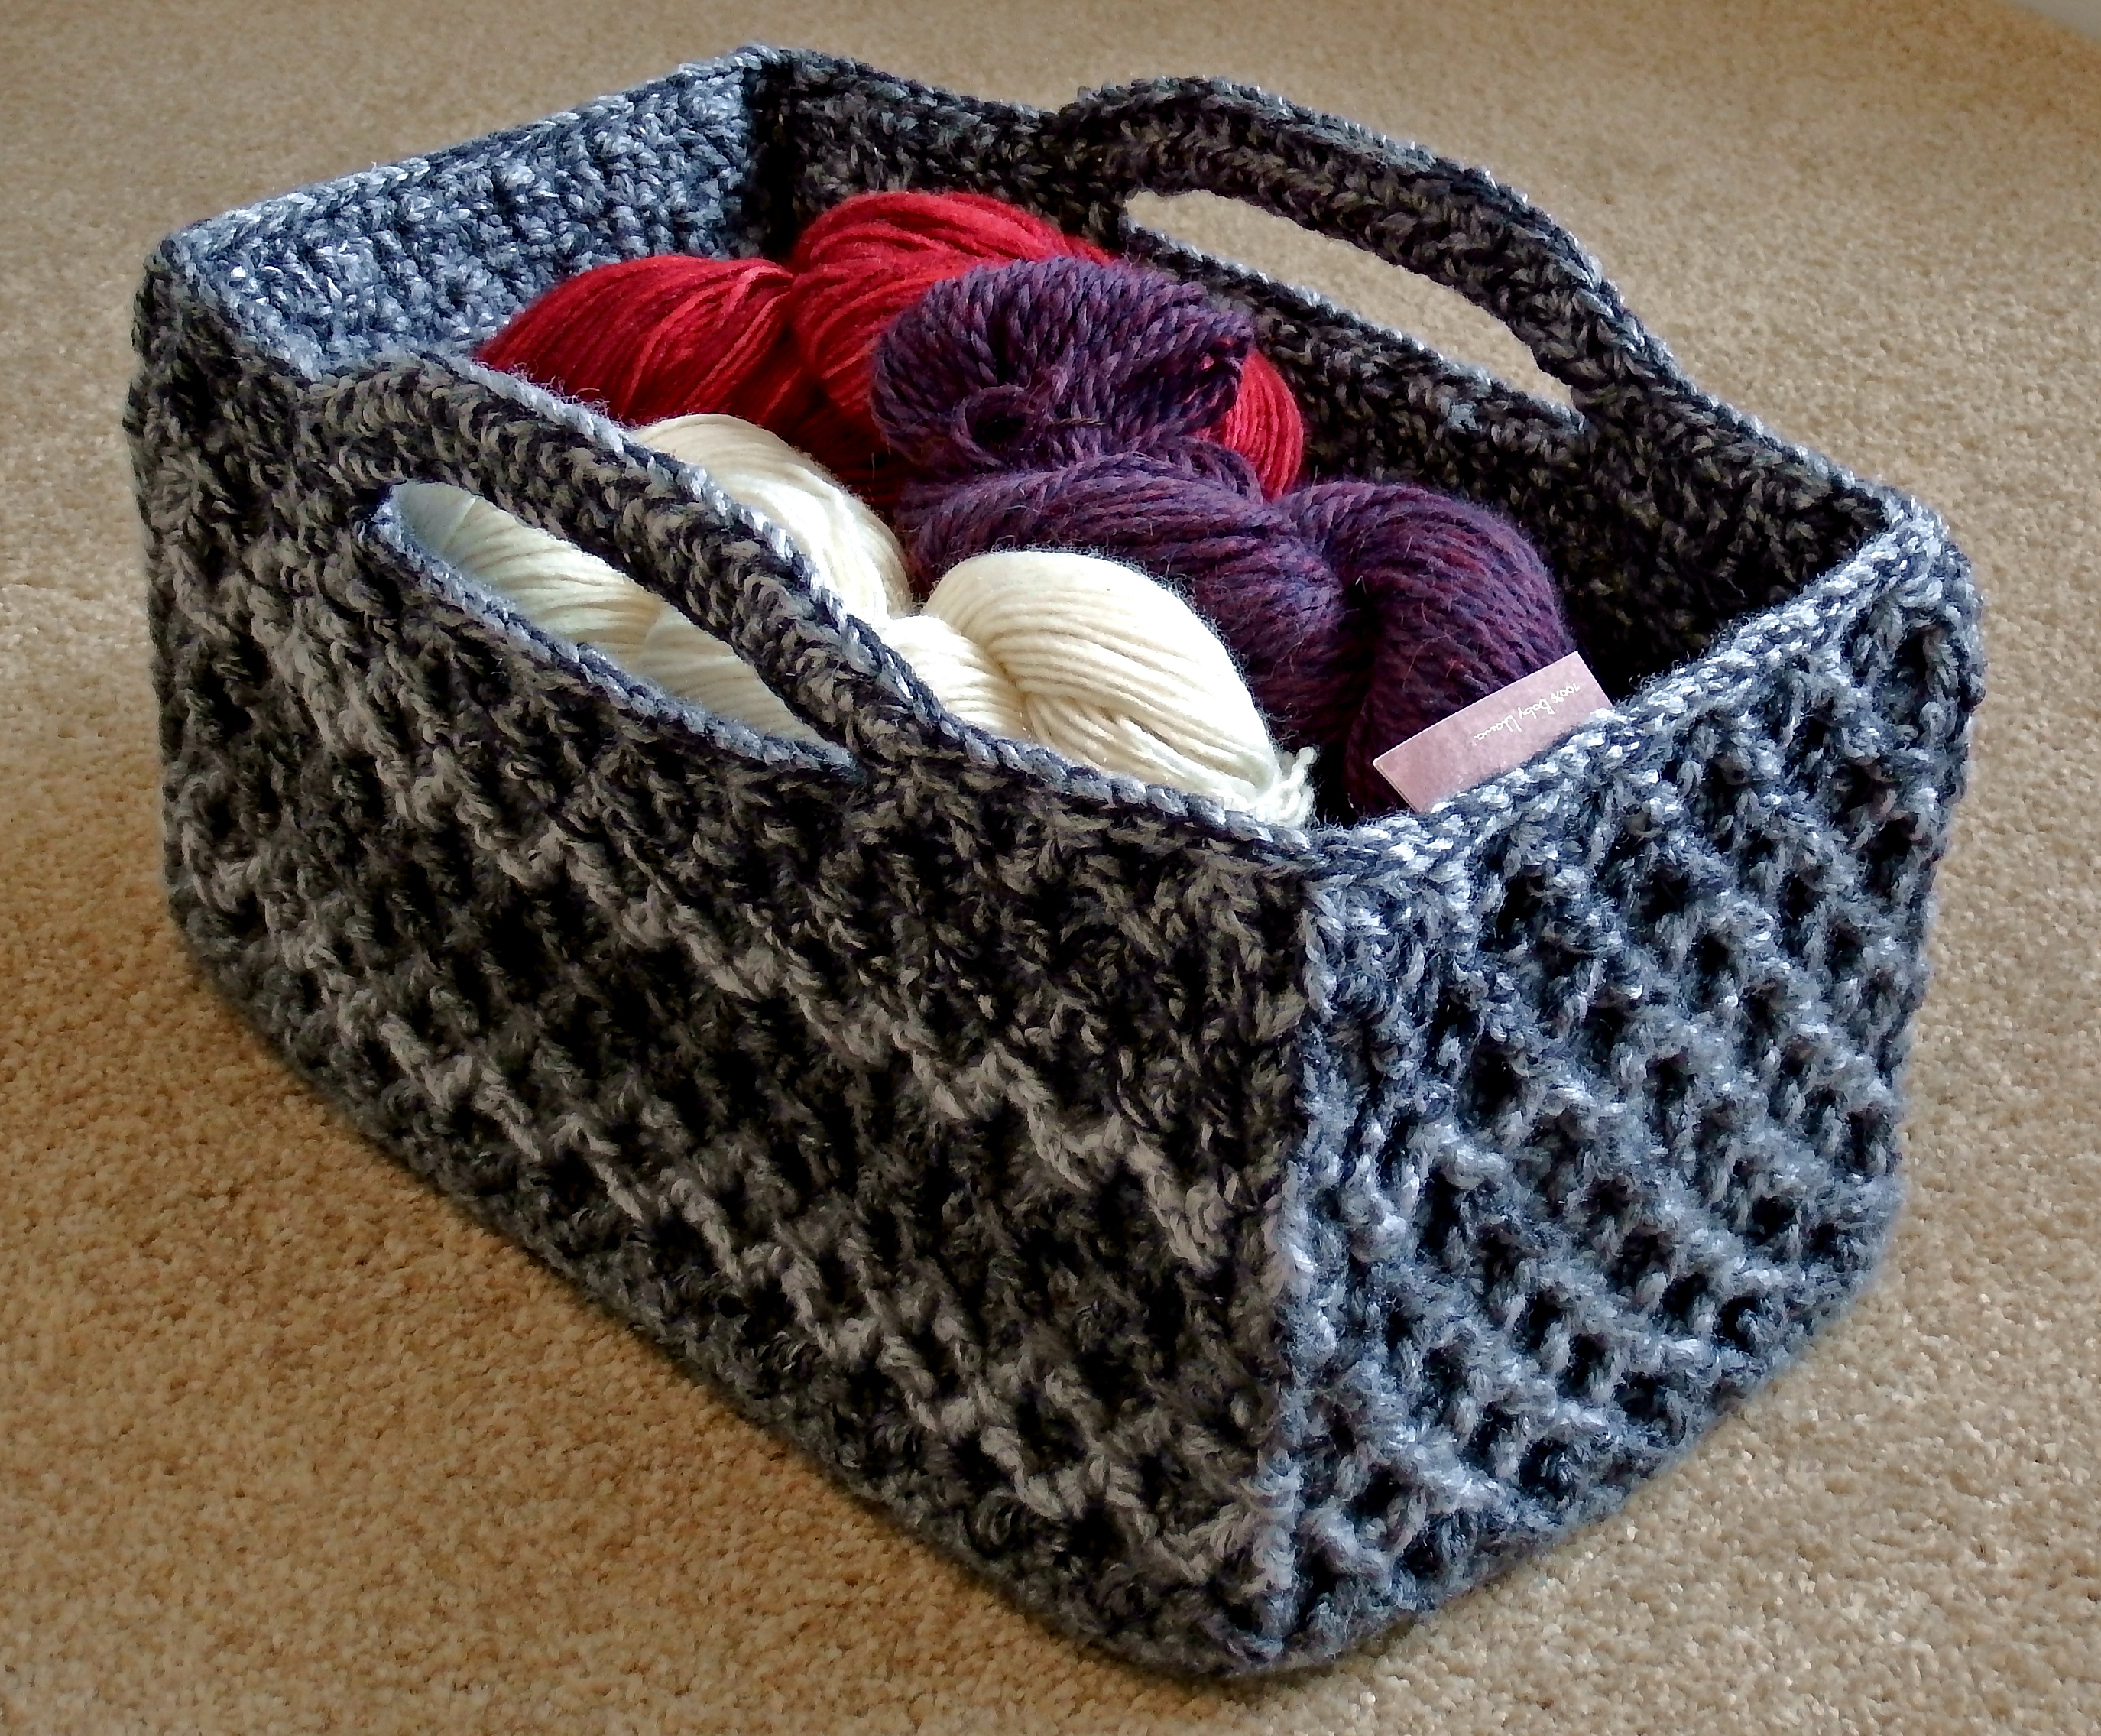 26 Crochet Basket Patterns for Beginners